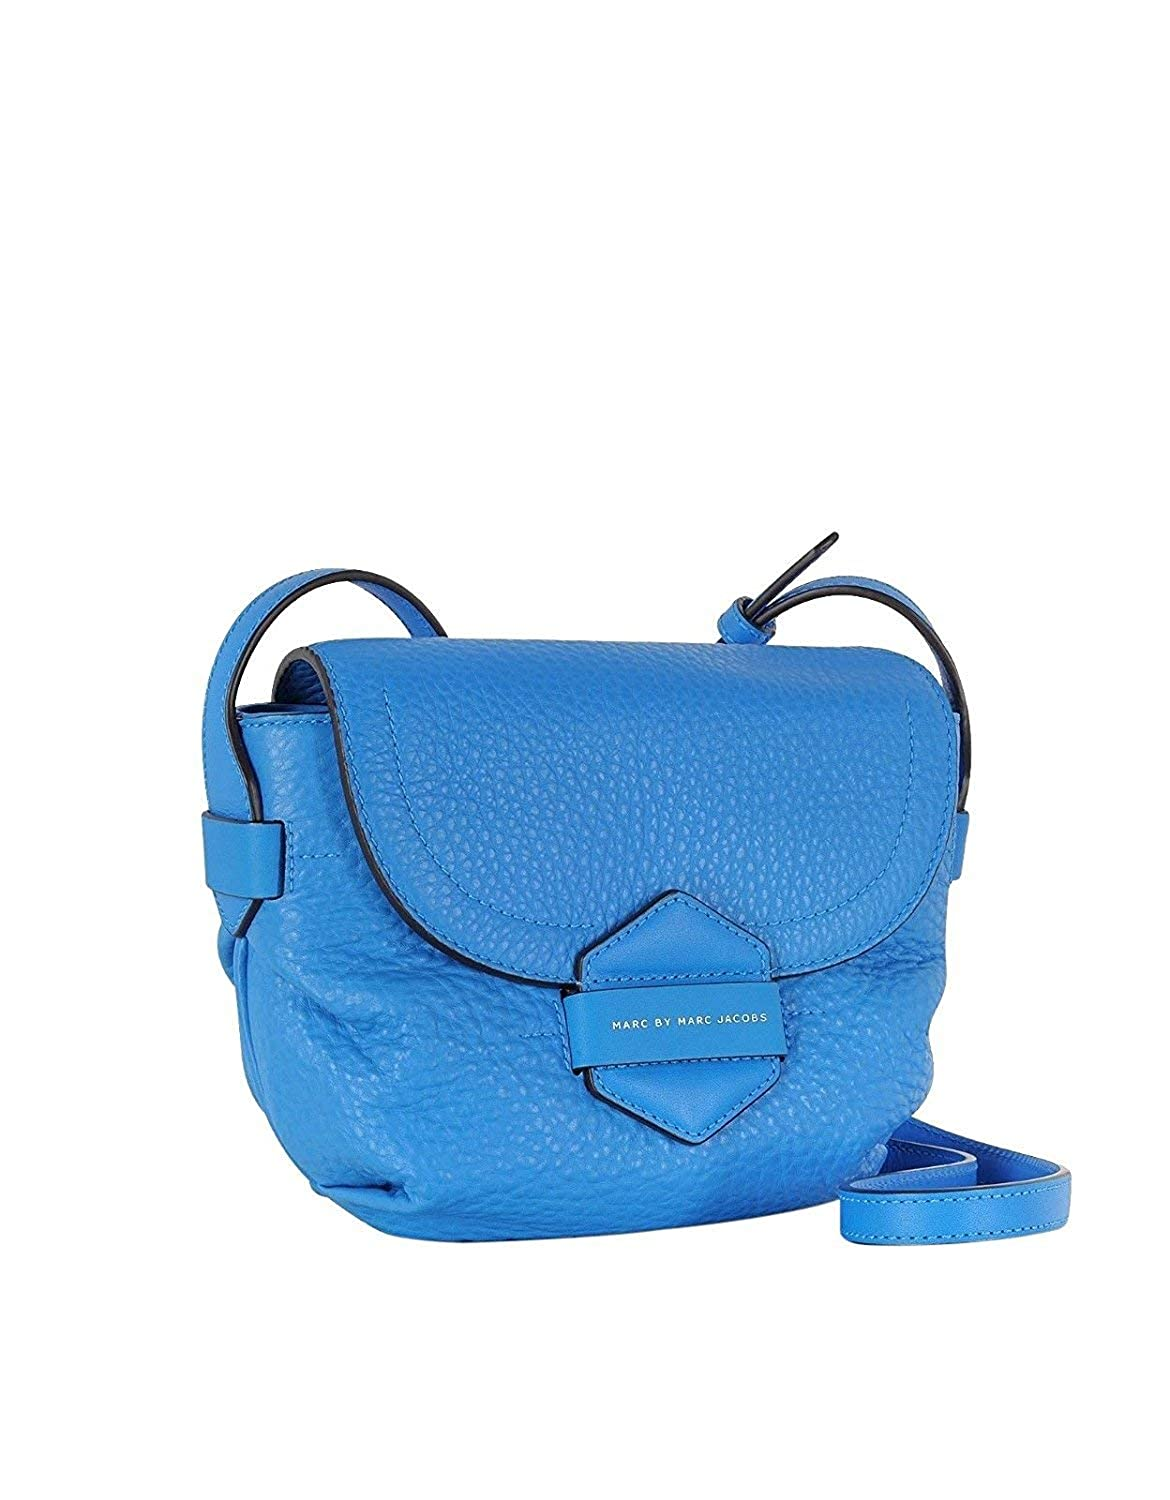 7fbe203a8a9f Amazon.com  Marc By Marc Jacobs Blue Leather Half Pipe Annable Crossbody Bag  M0003374  Clothing